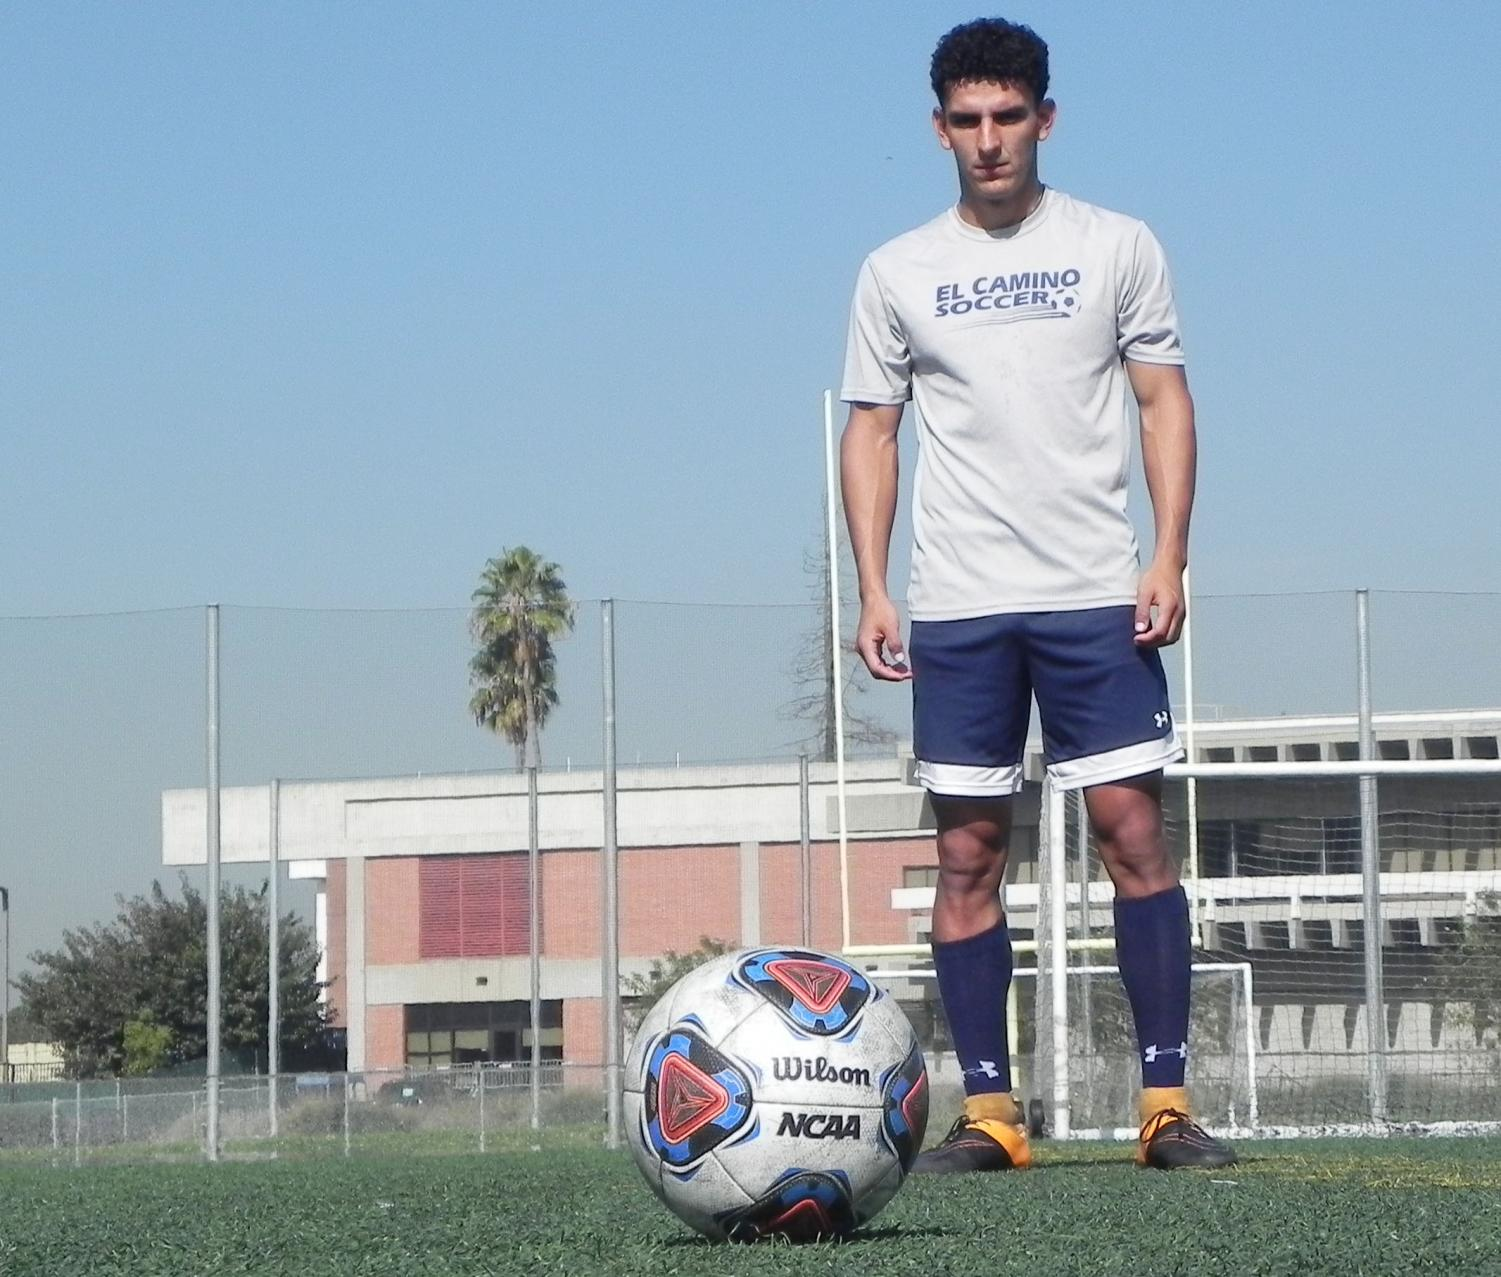 Men's soccer forward makes good on his chances